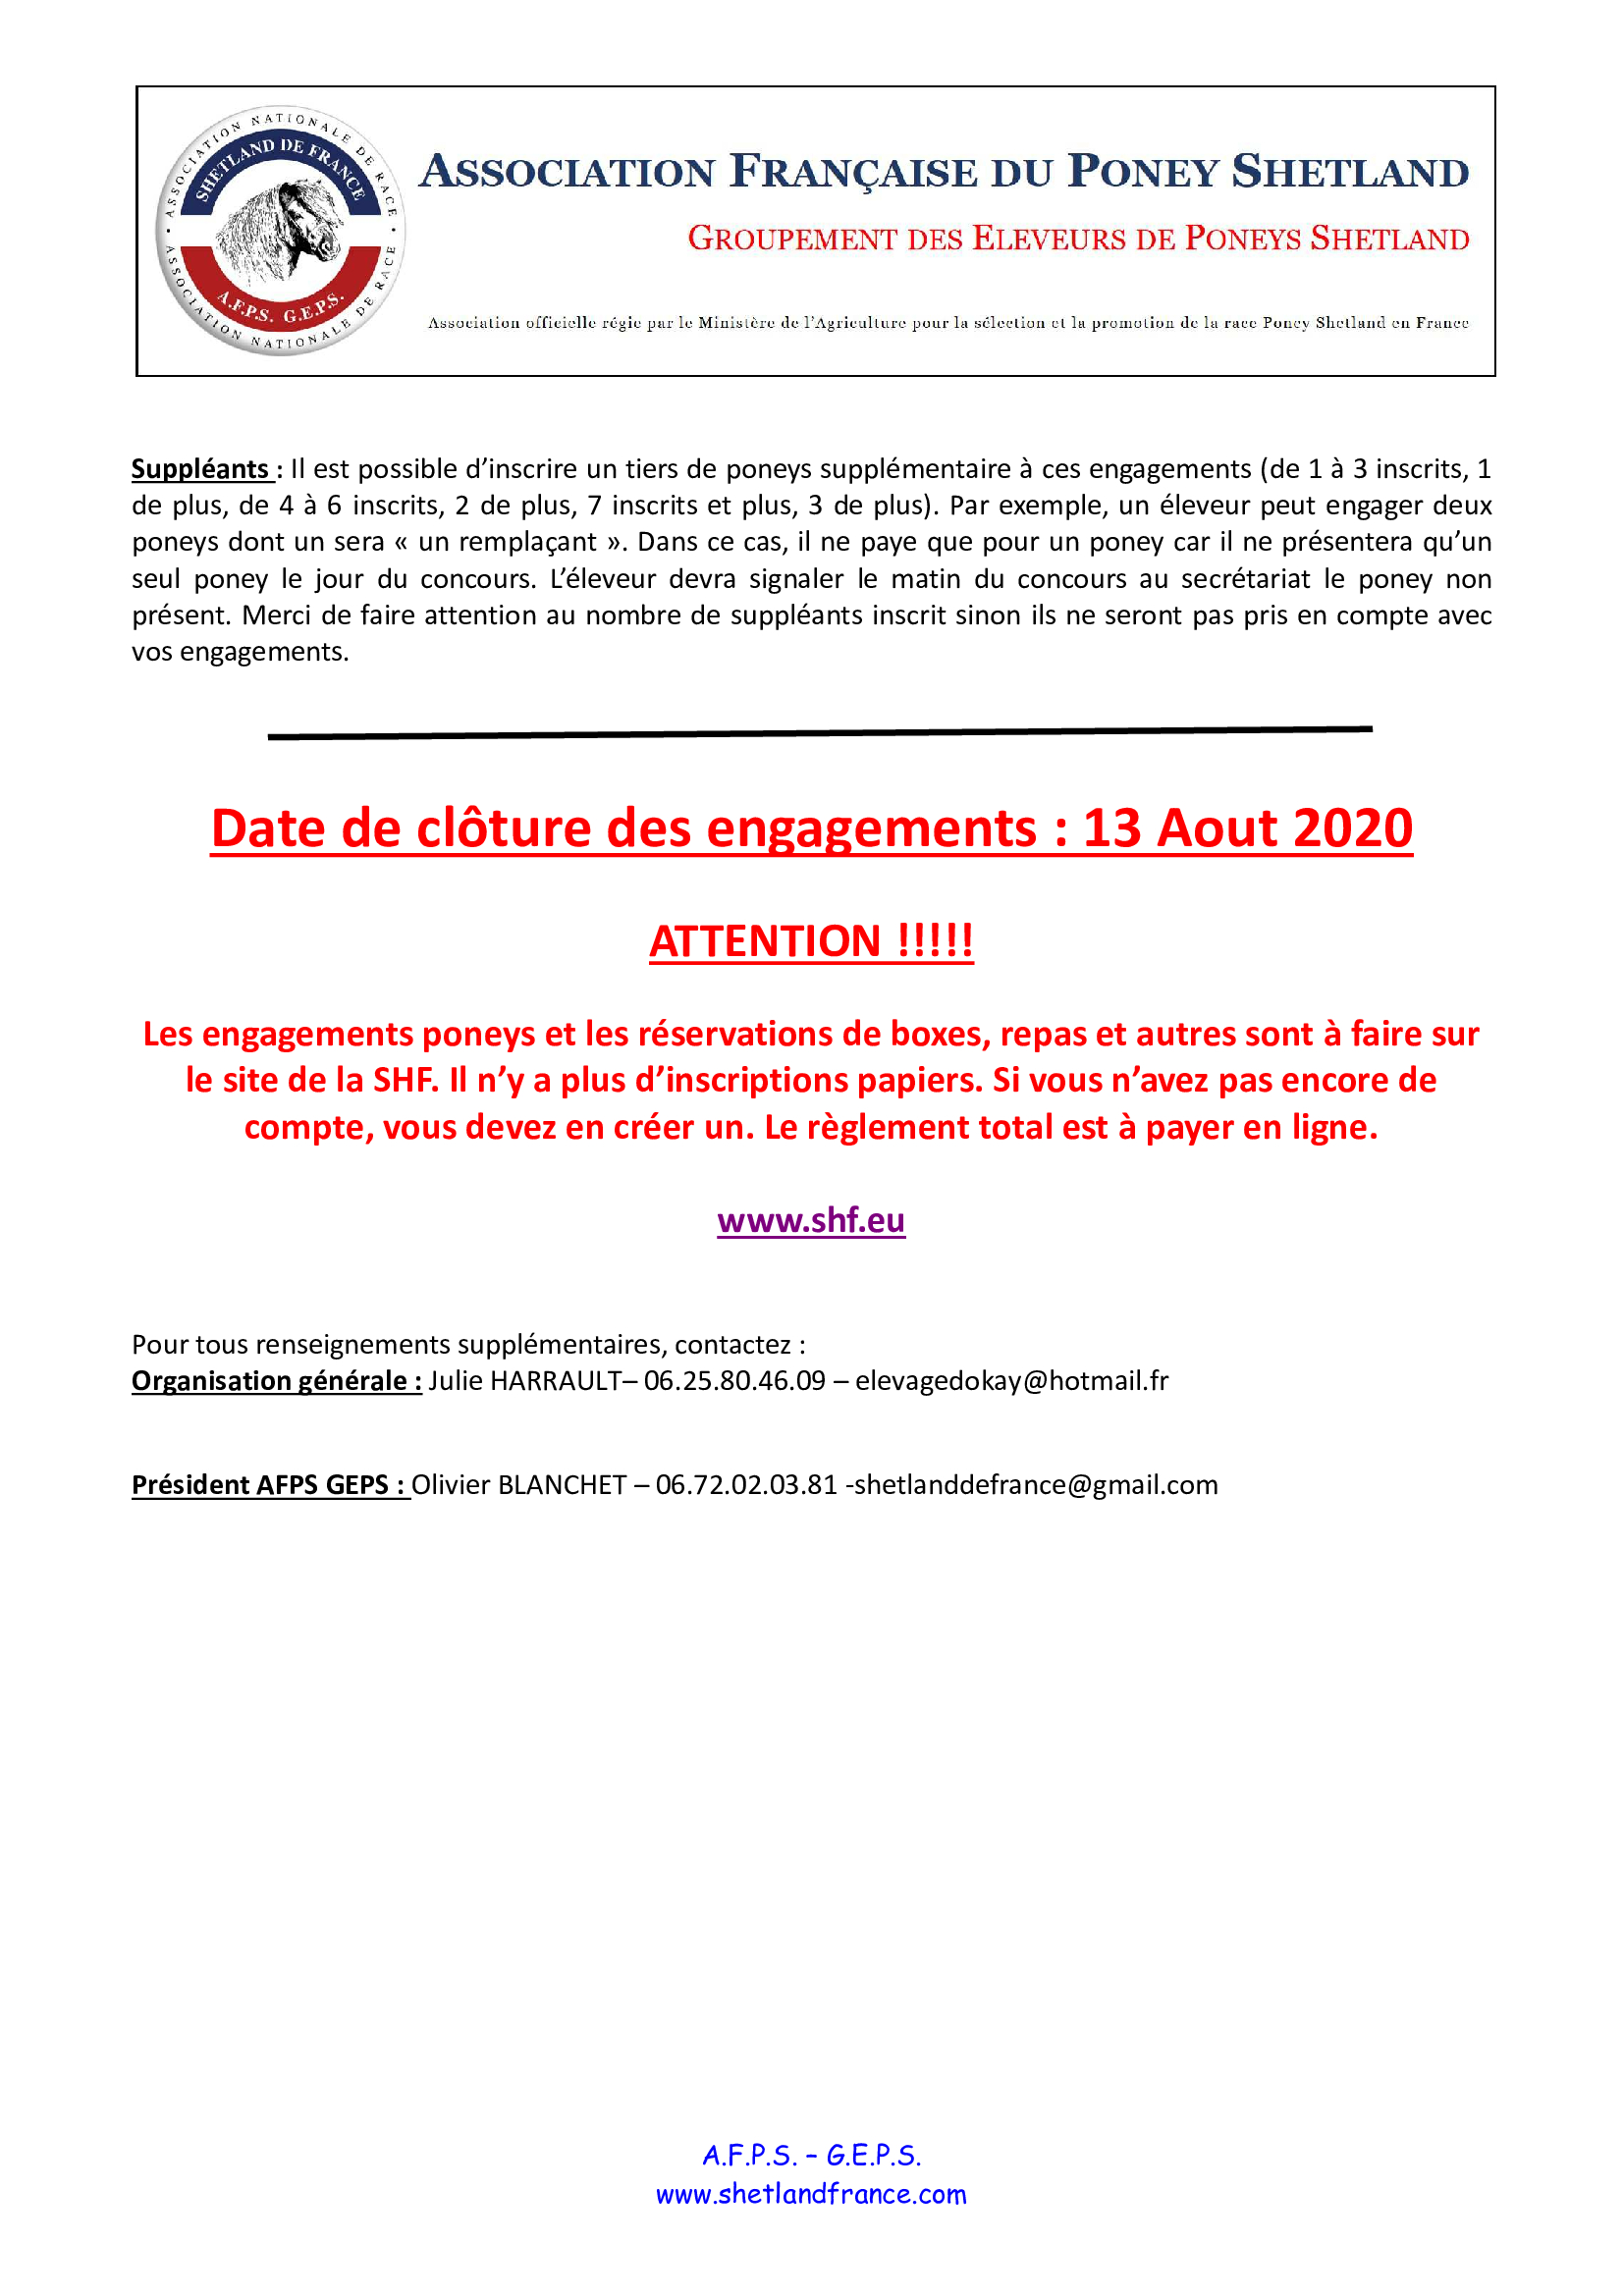 Dossier-renseignements-lignieres-2020-page3